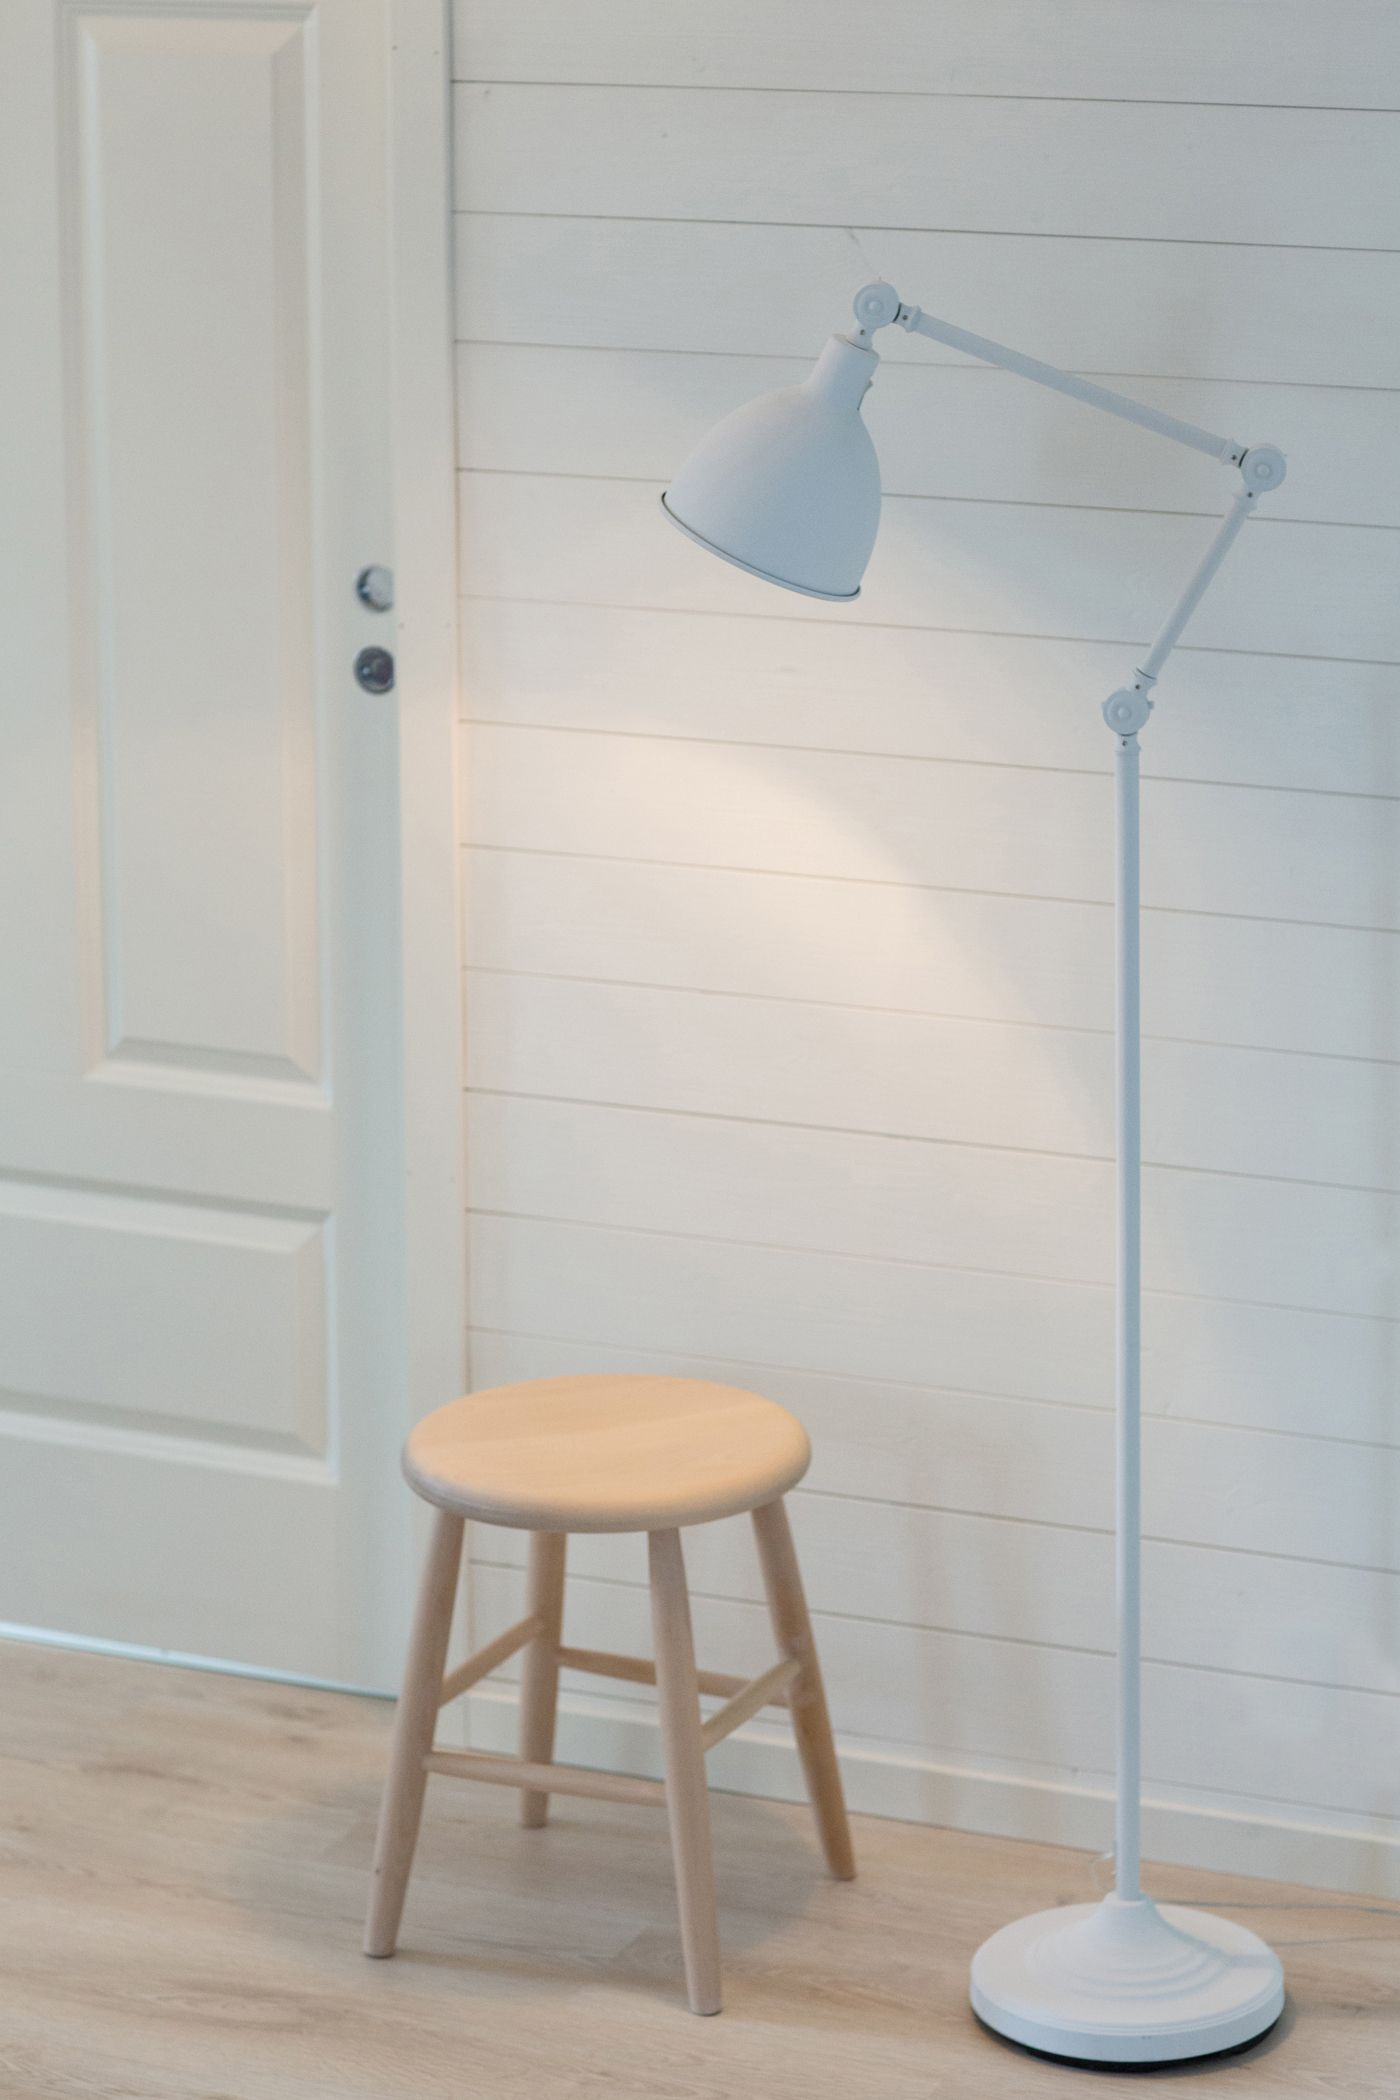 The Bazar Range Is Completed With A Decorative Floor Lamp The Lamp Is Available In Black And White And Em Scandinavian Floor Lamps Decorative Floor Lamps Lamp